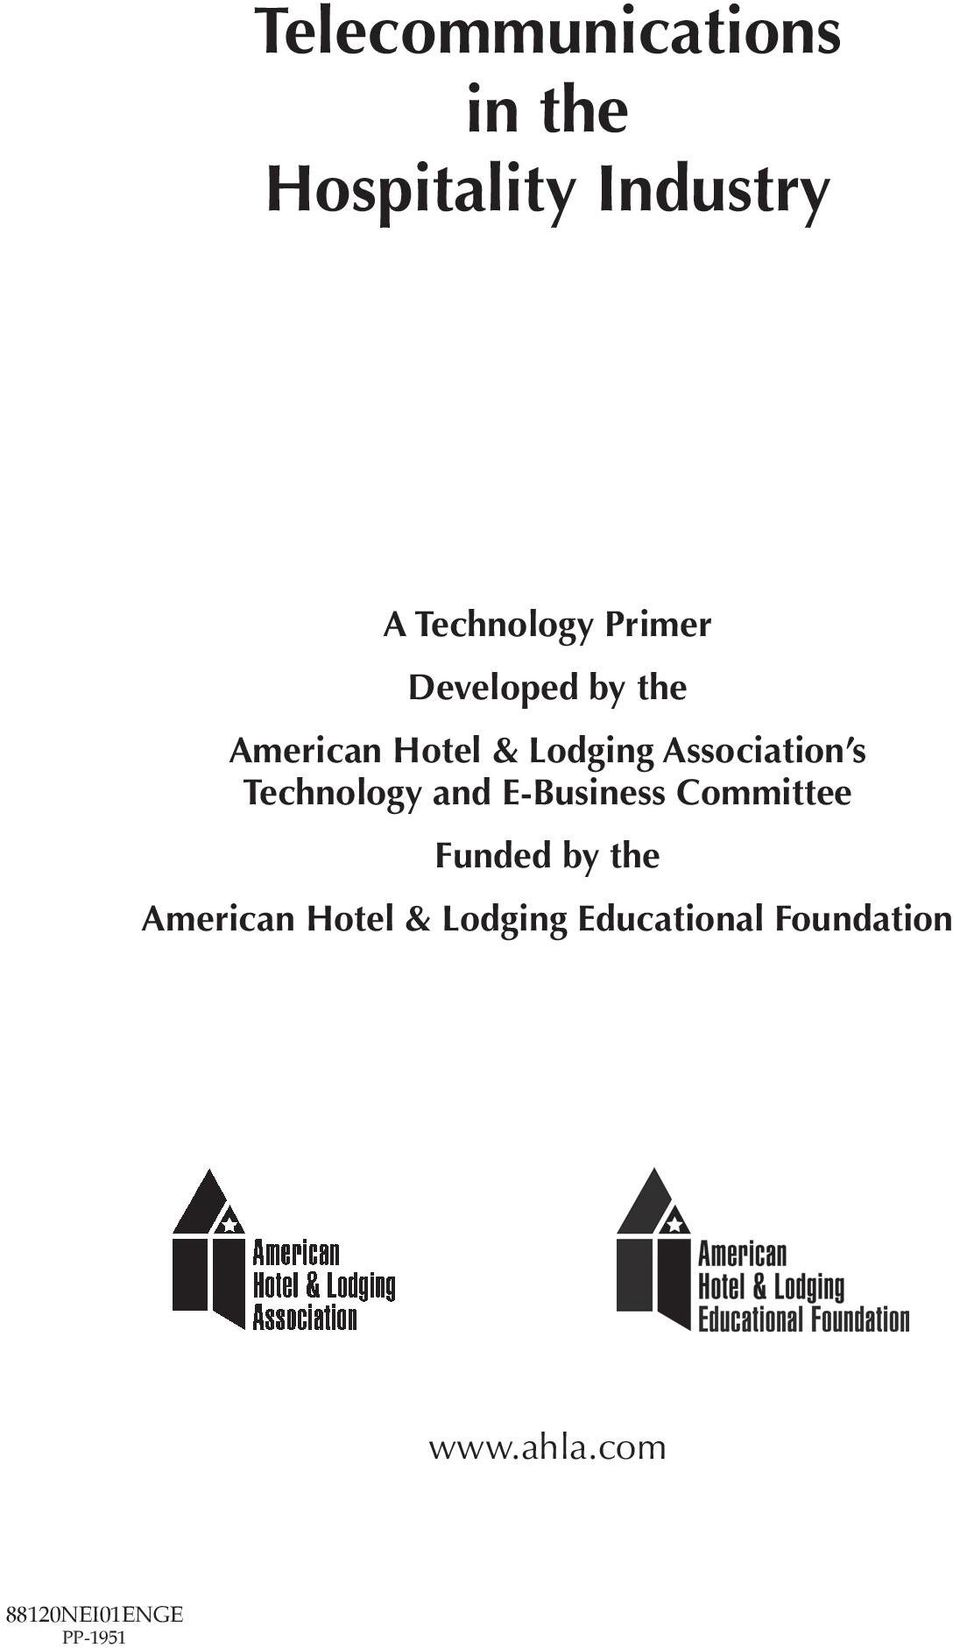 Technology and E-Business Committee Funded by the American